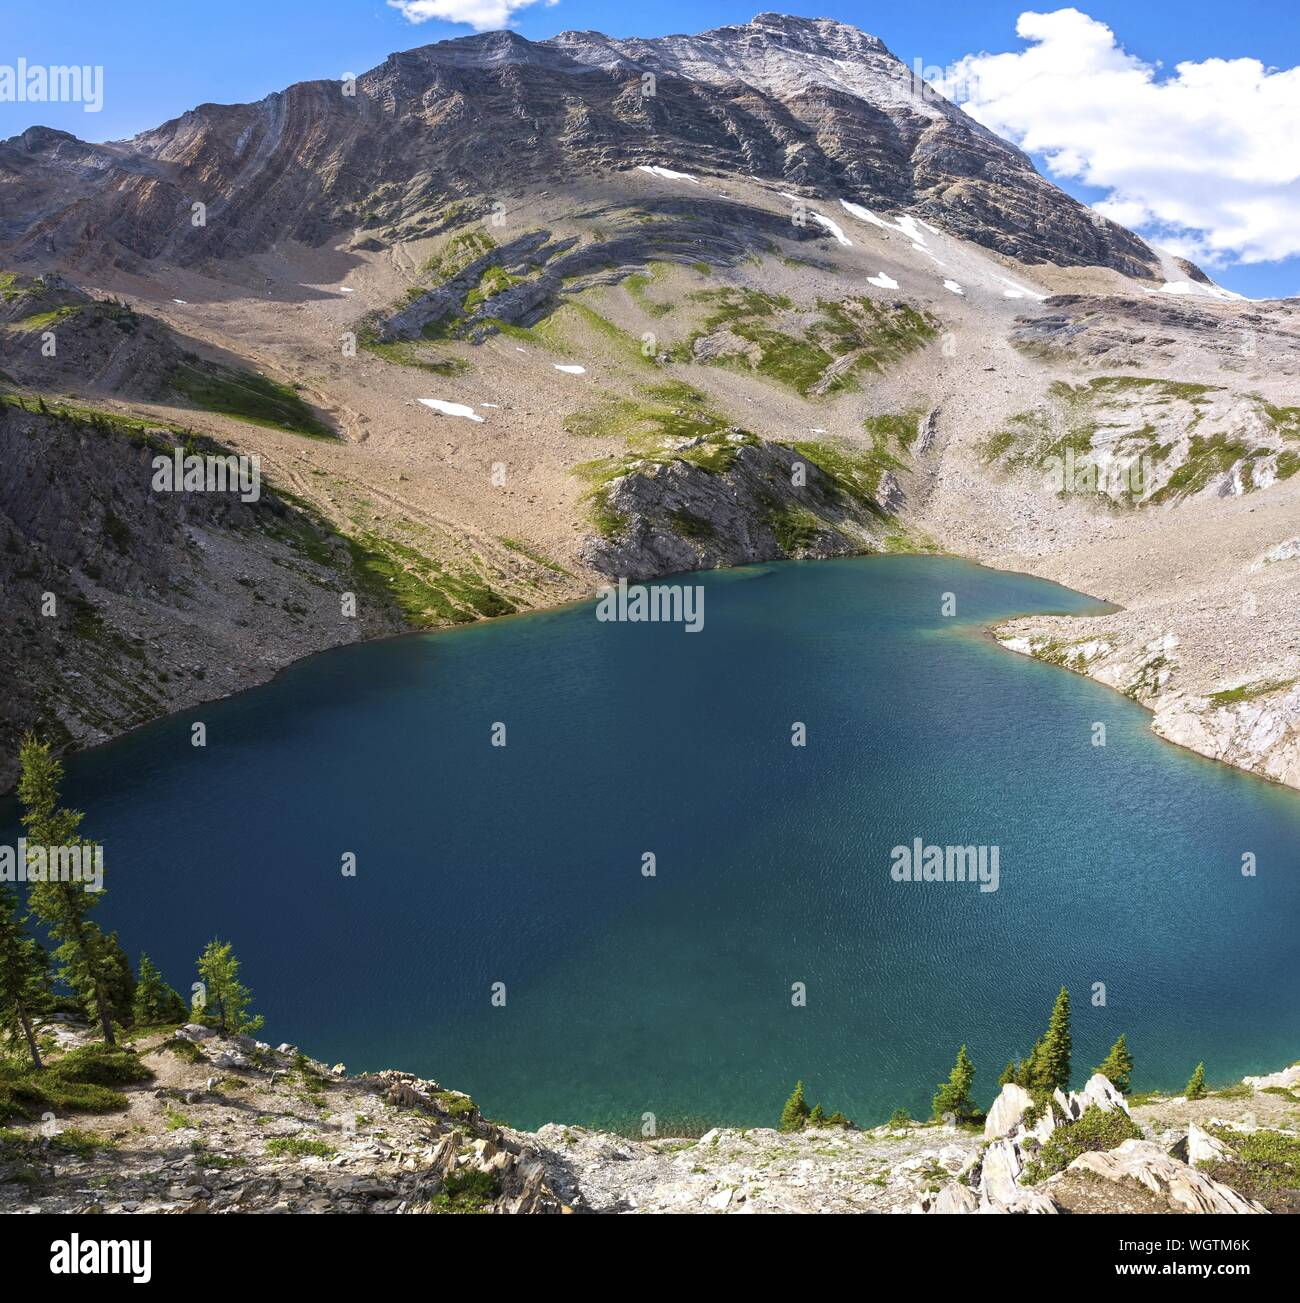 Aerial Landscape View of Beautiful Hamilton Lake and Mount Carnarvon Peak in Yoho National Park, Canadian Rocky Mountains Stock Photo